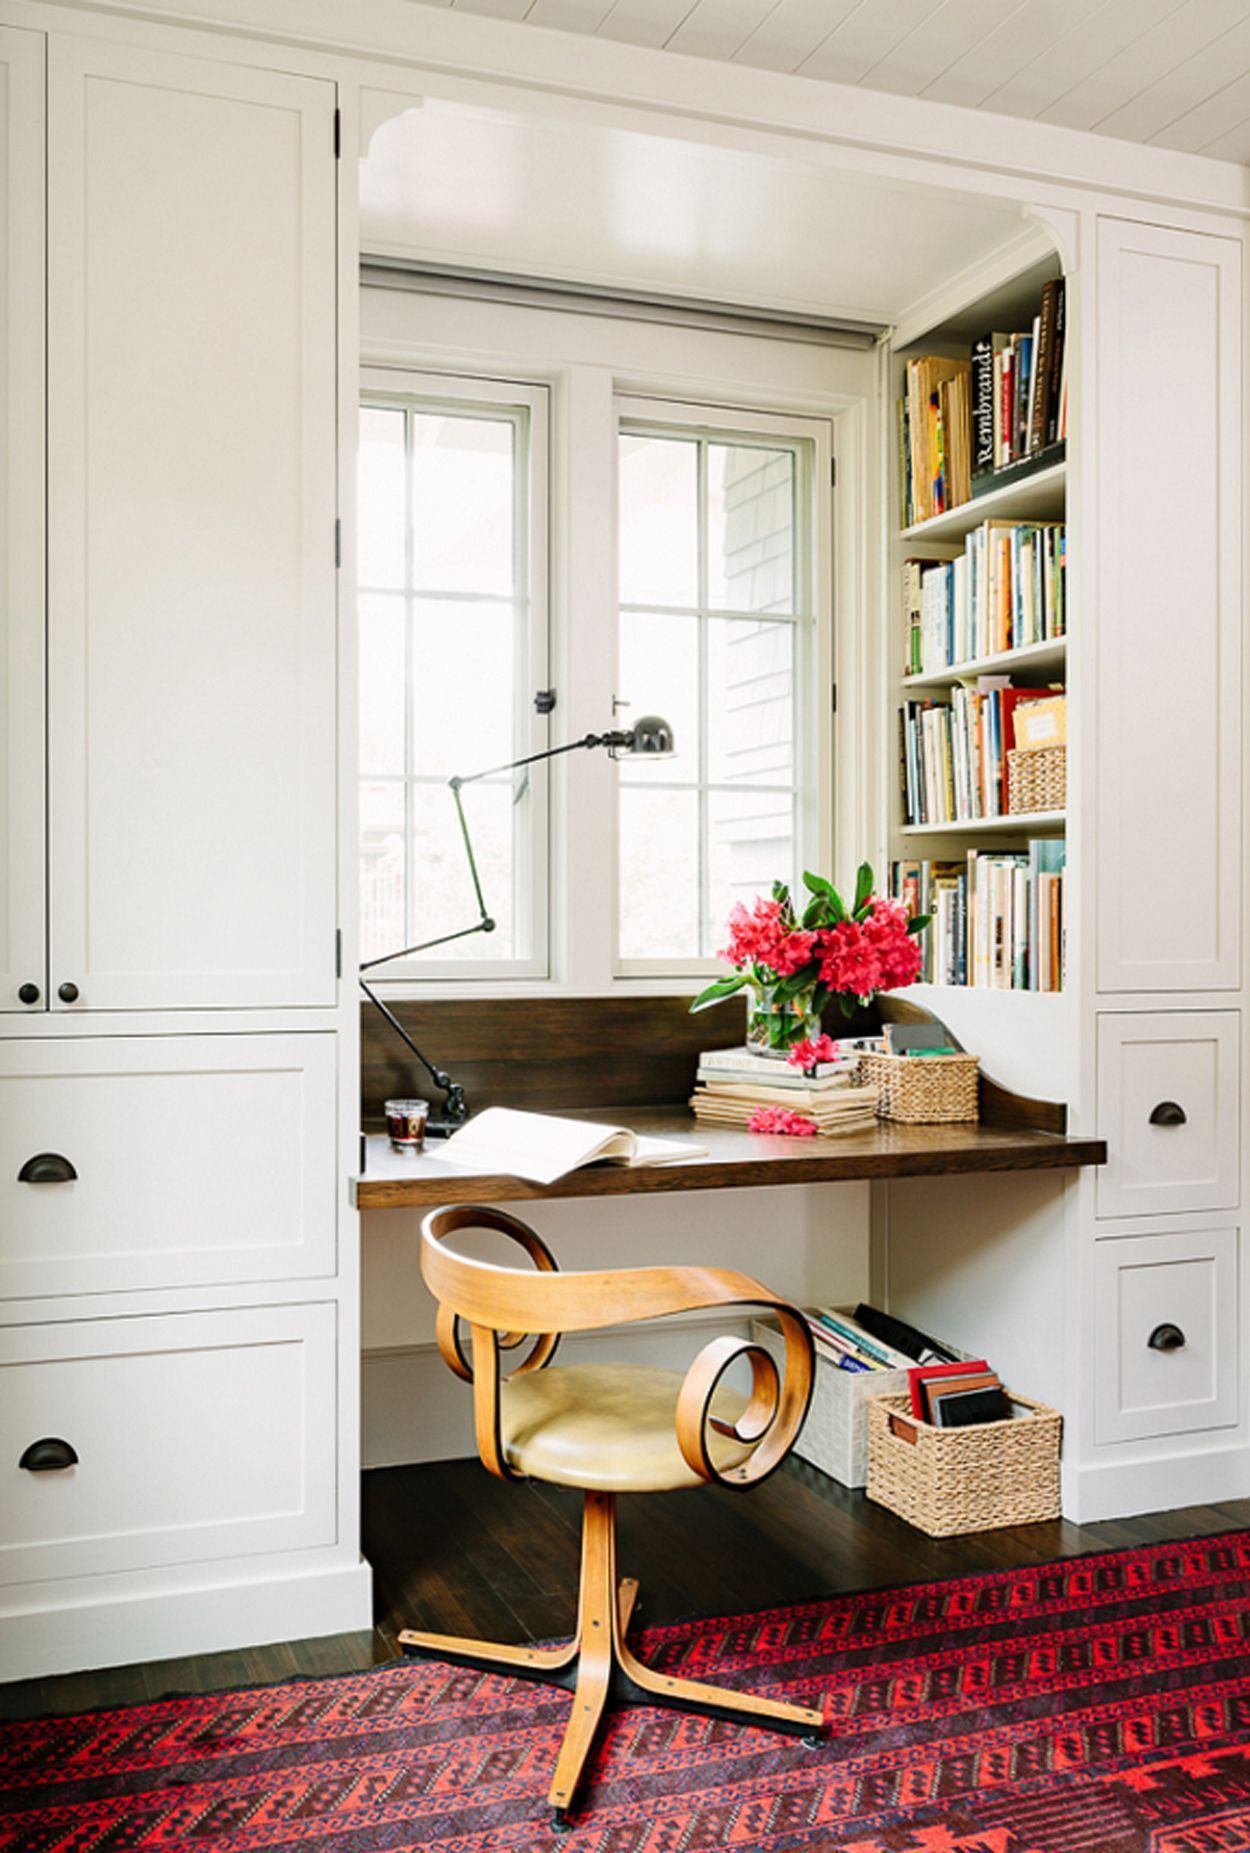 Get Inspired By These Home Workspaces To Make The Most